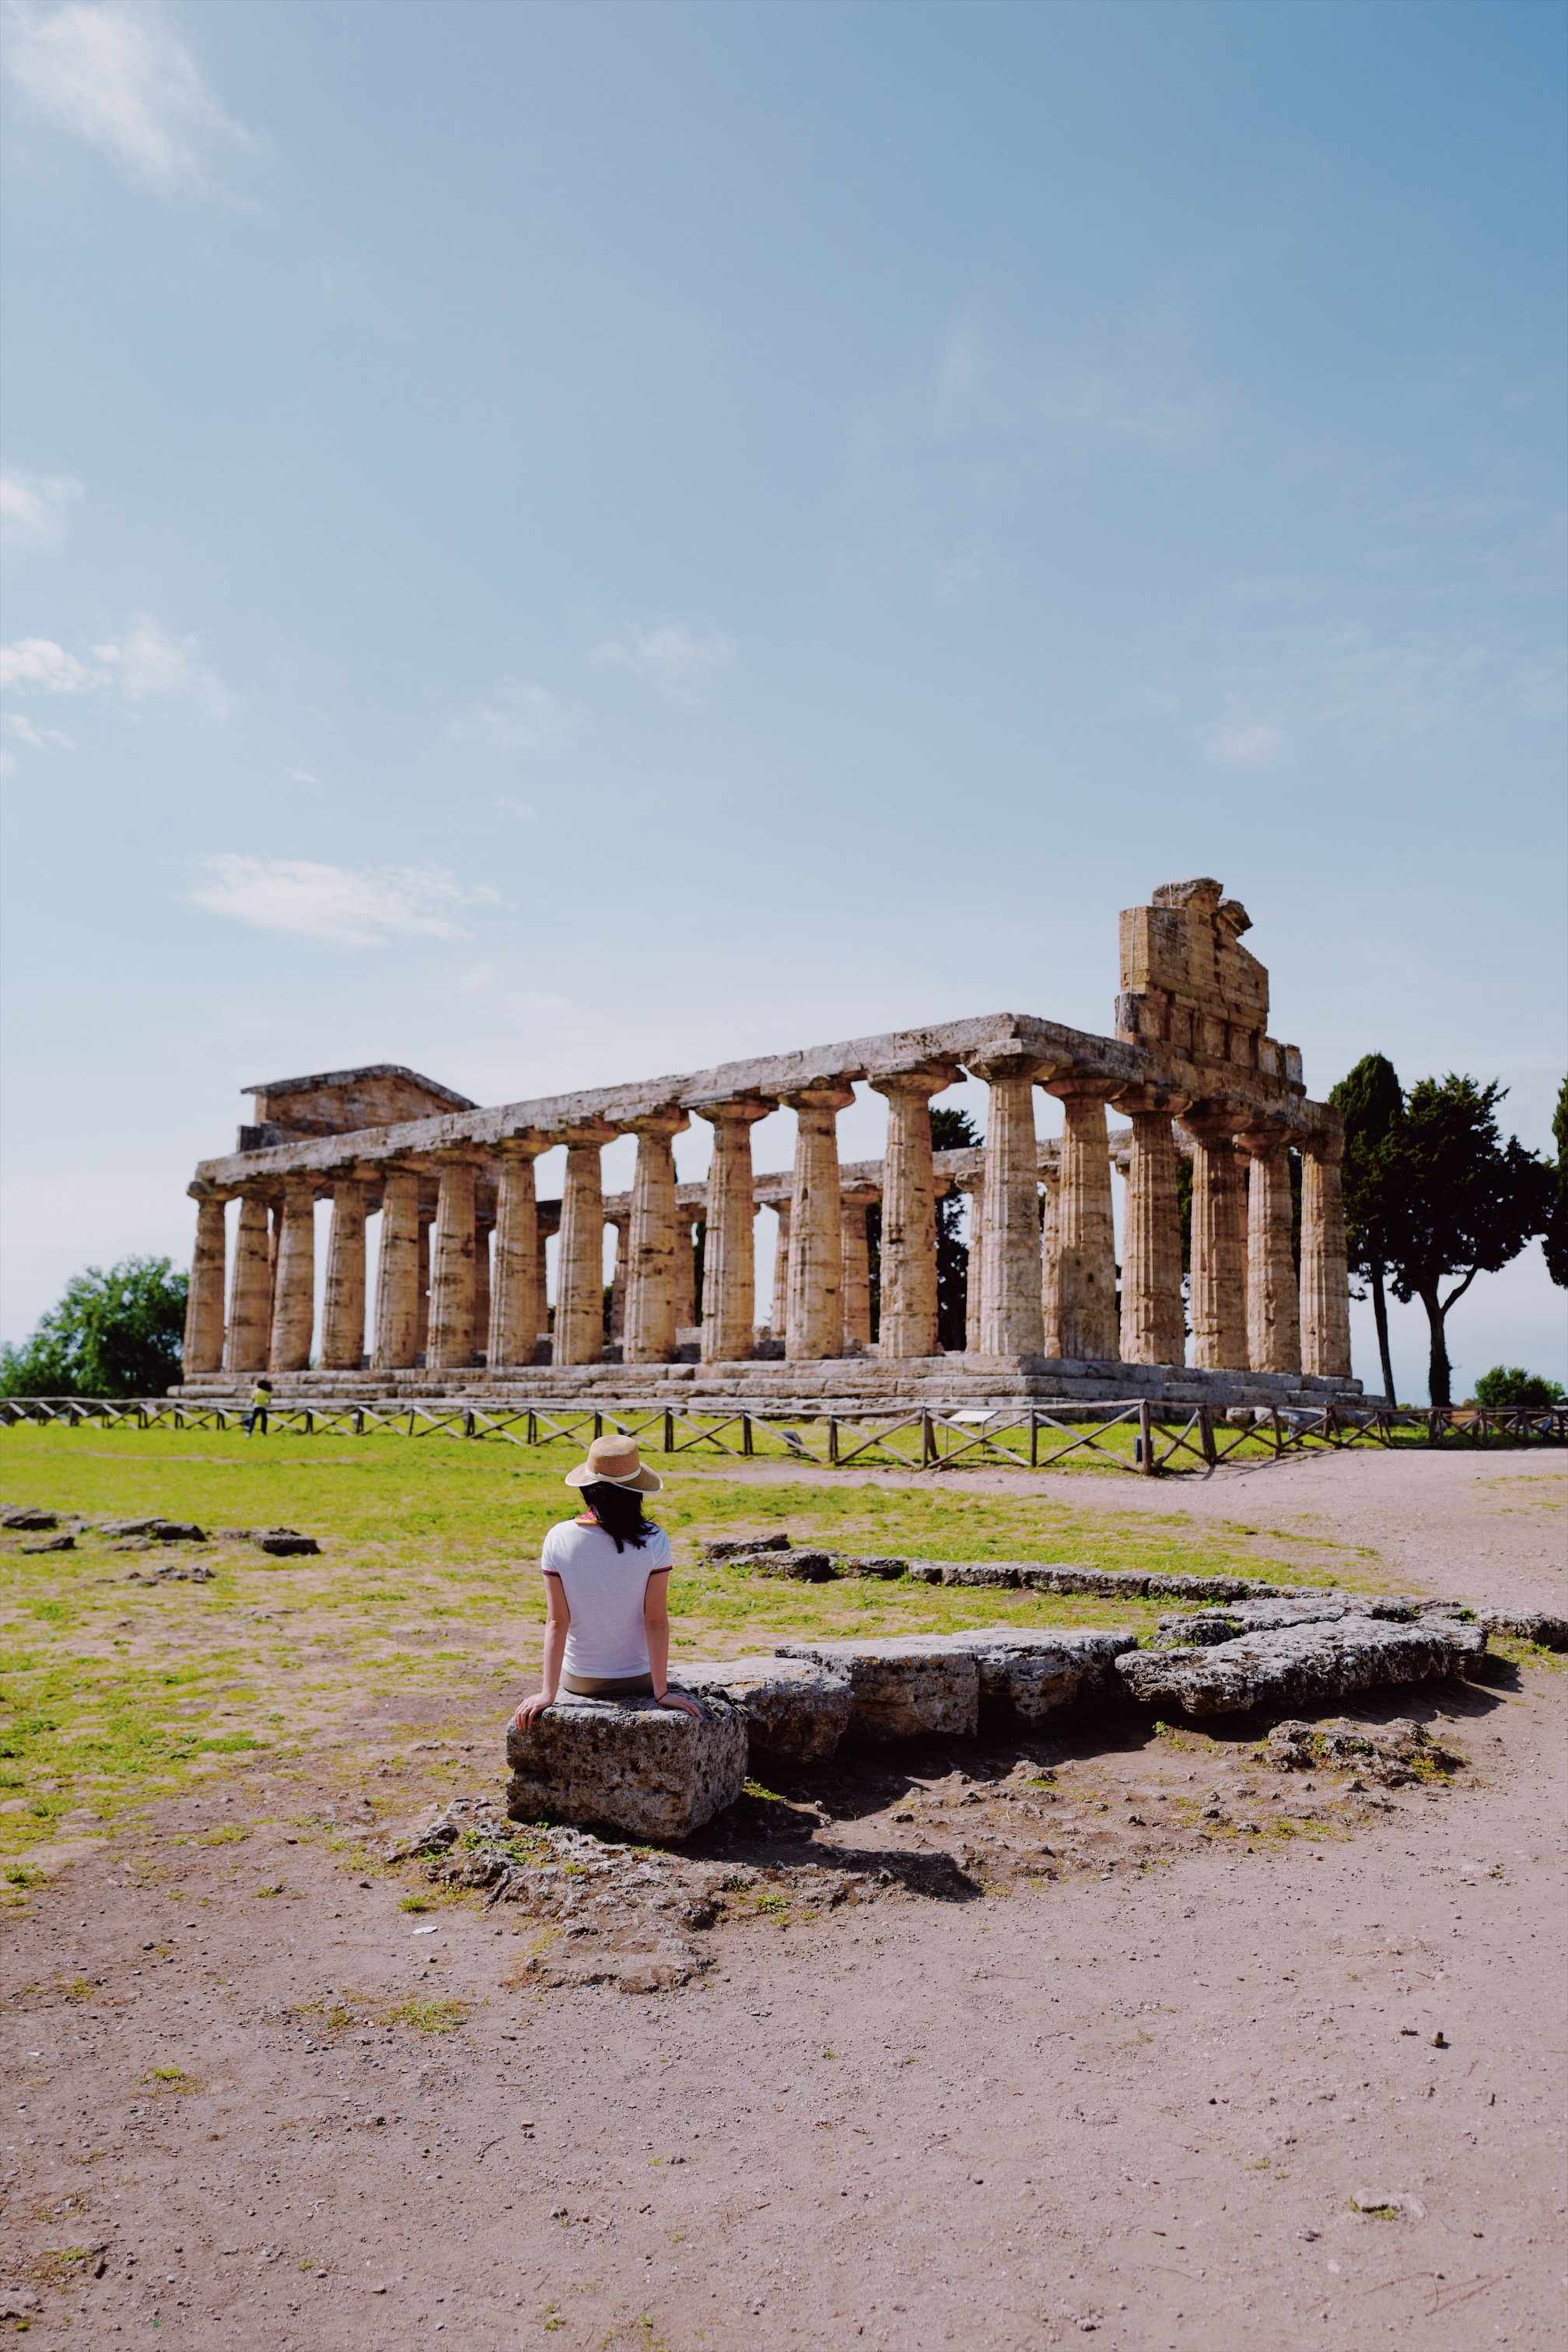 Once you enter the site at Paestum, you will first see the Temple of Athena.